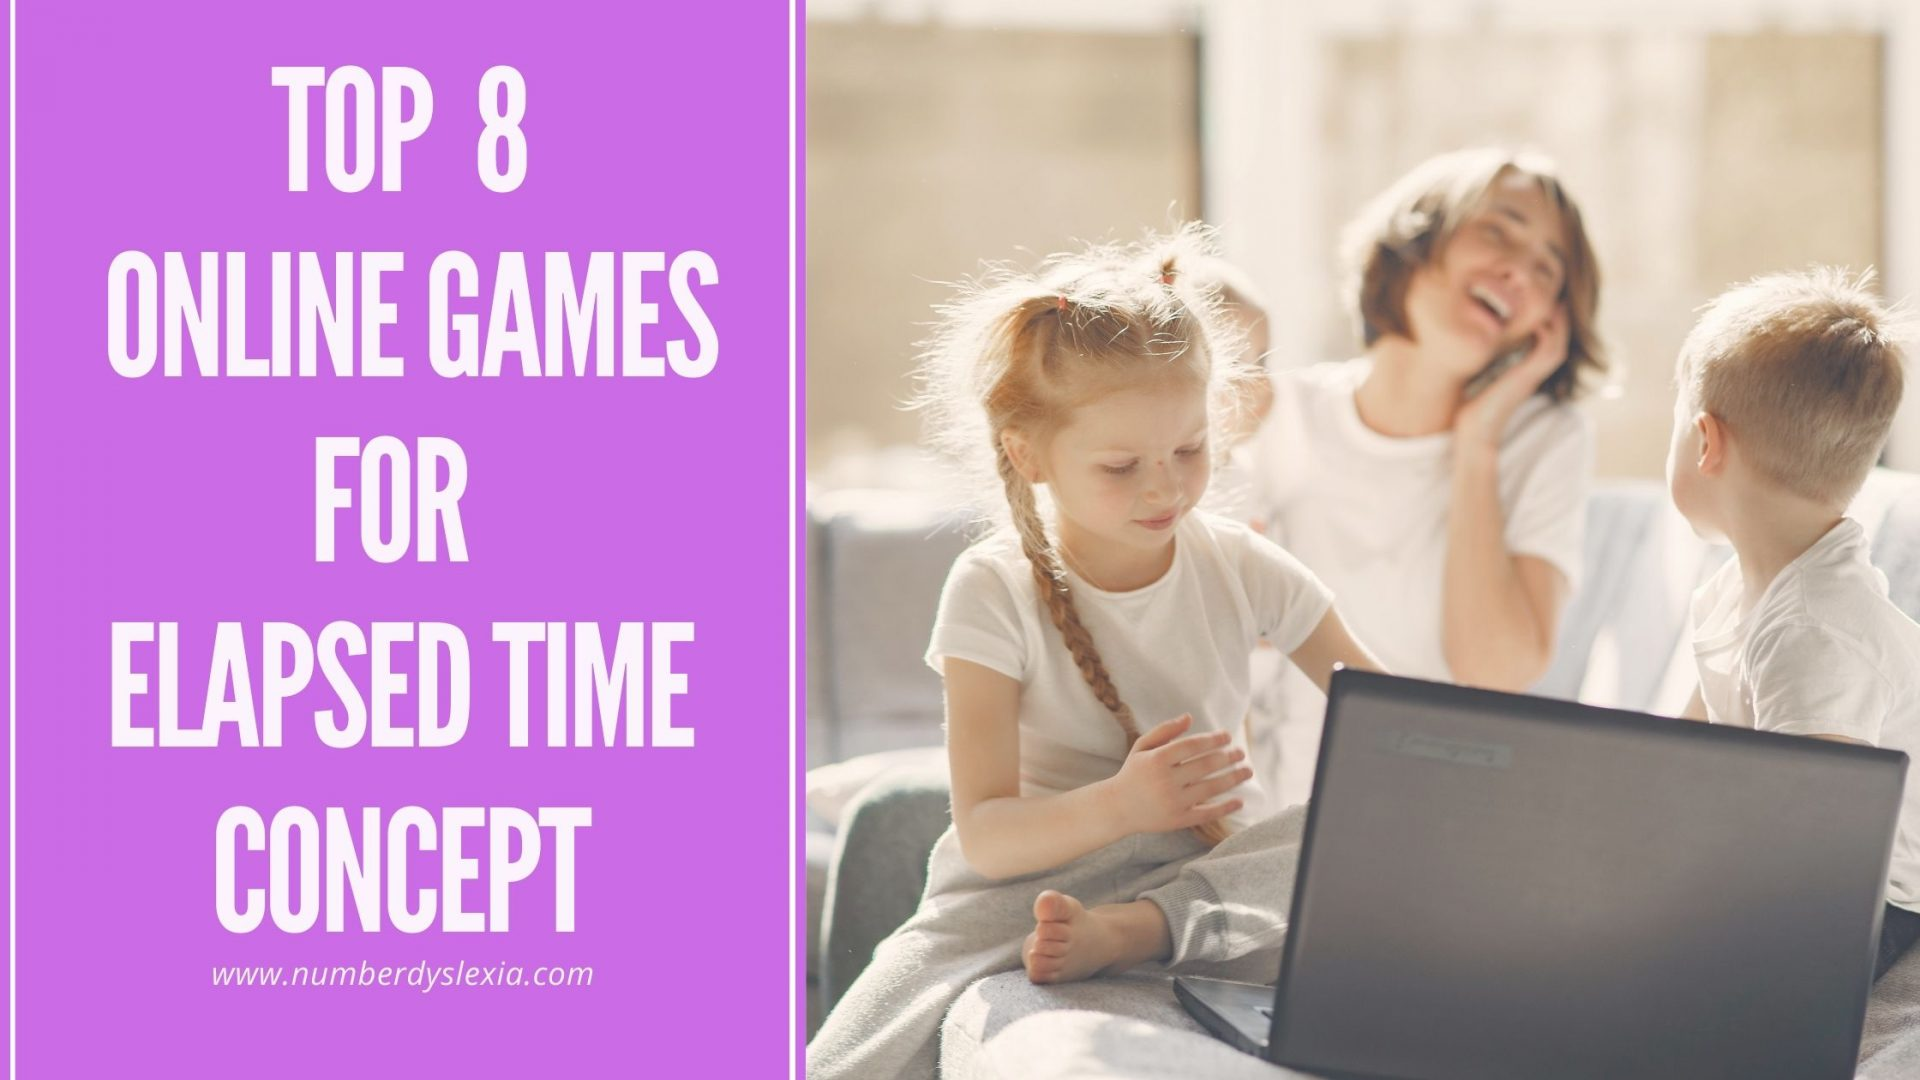 List of top 7 online games for teaching elapsed time concept to little kids